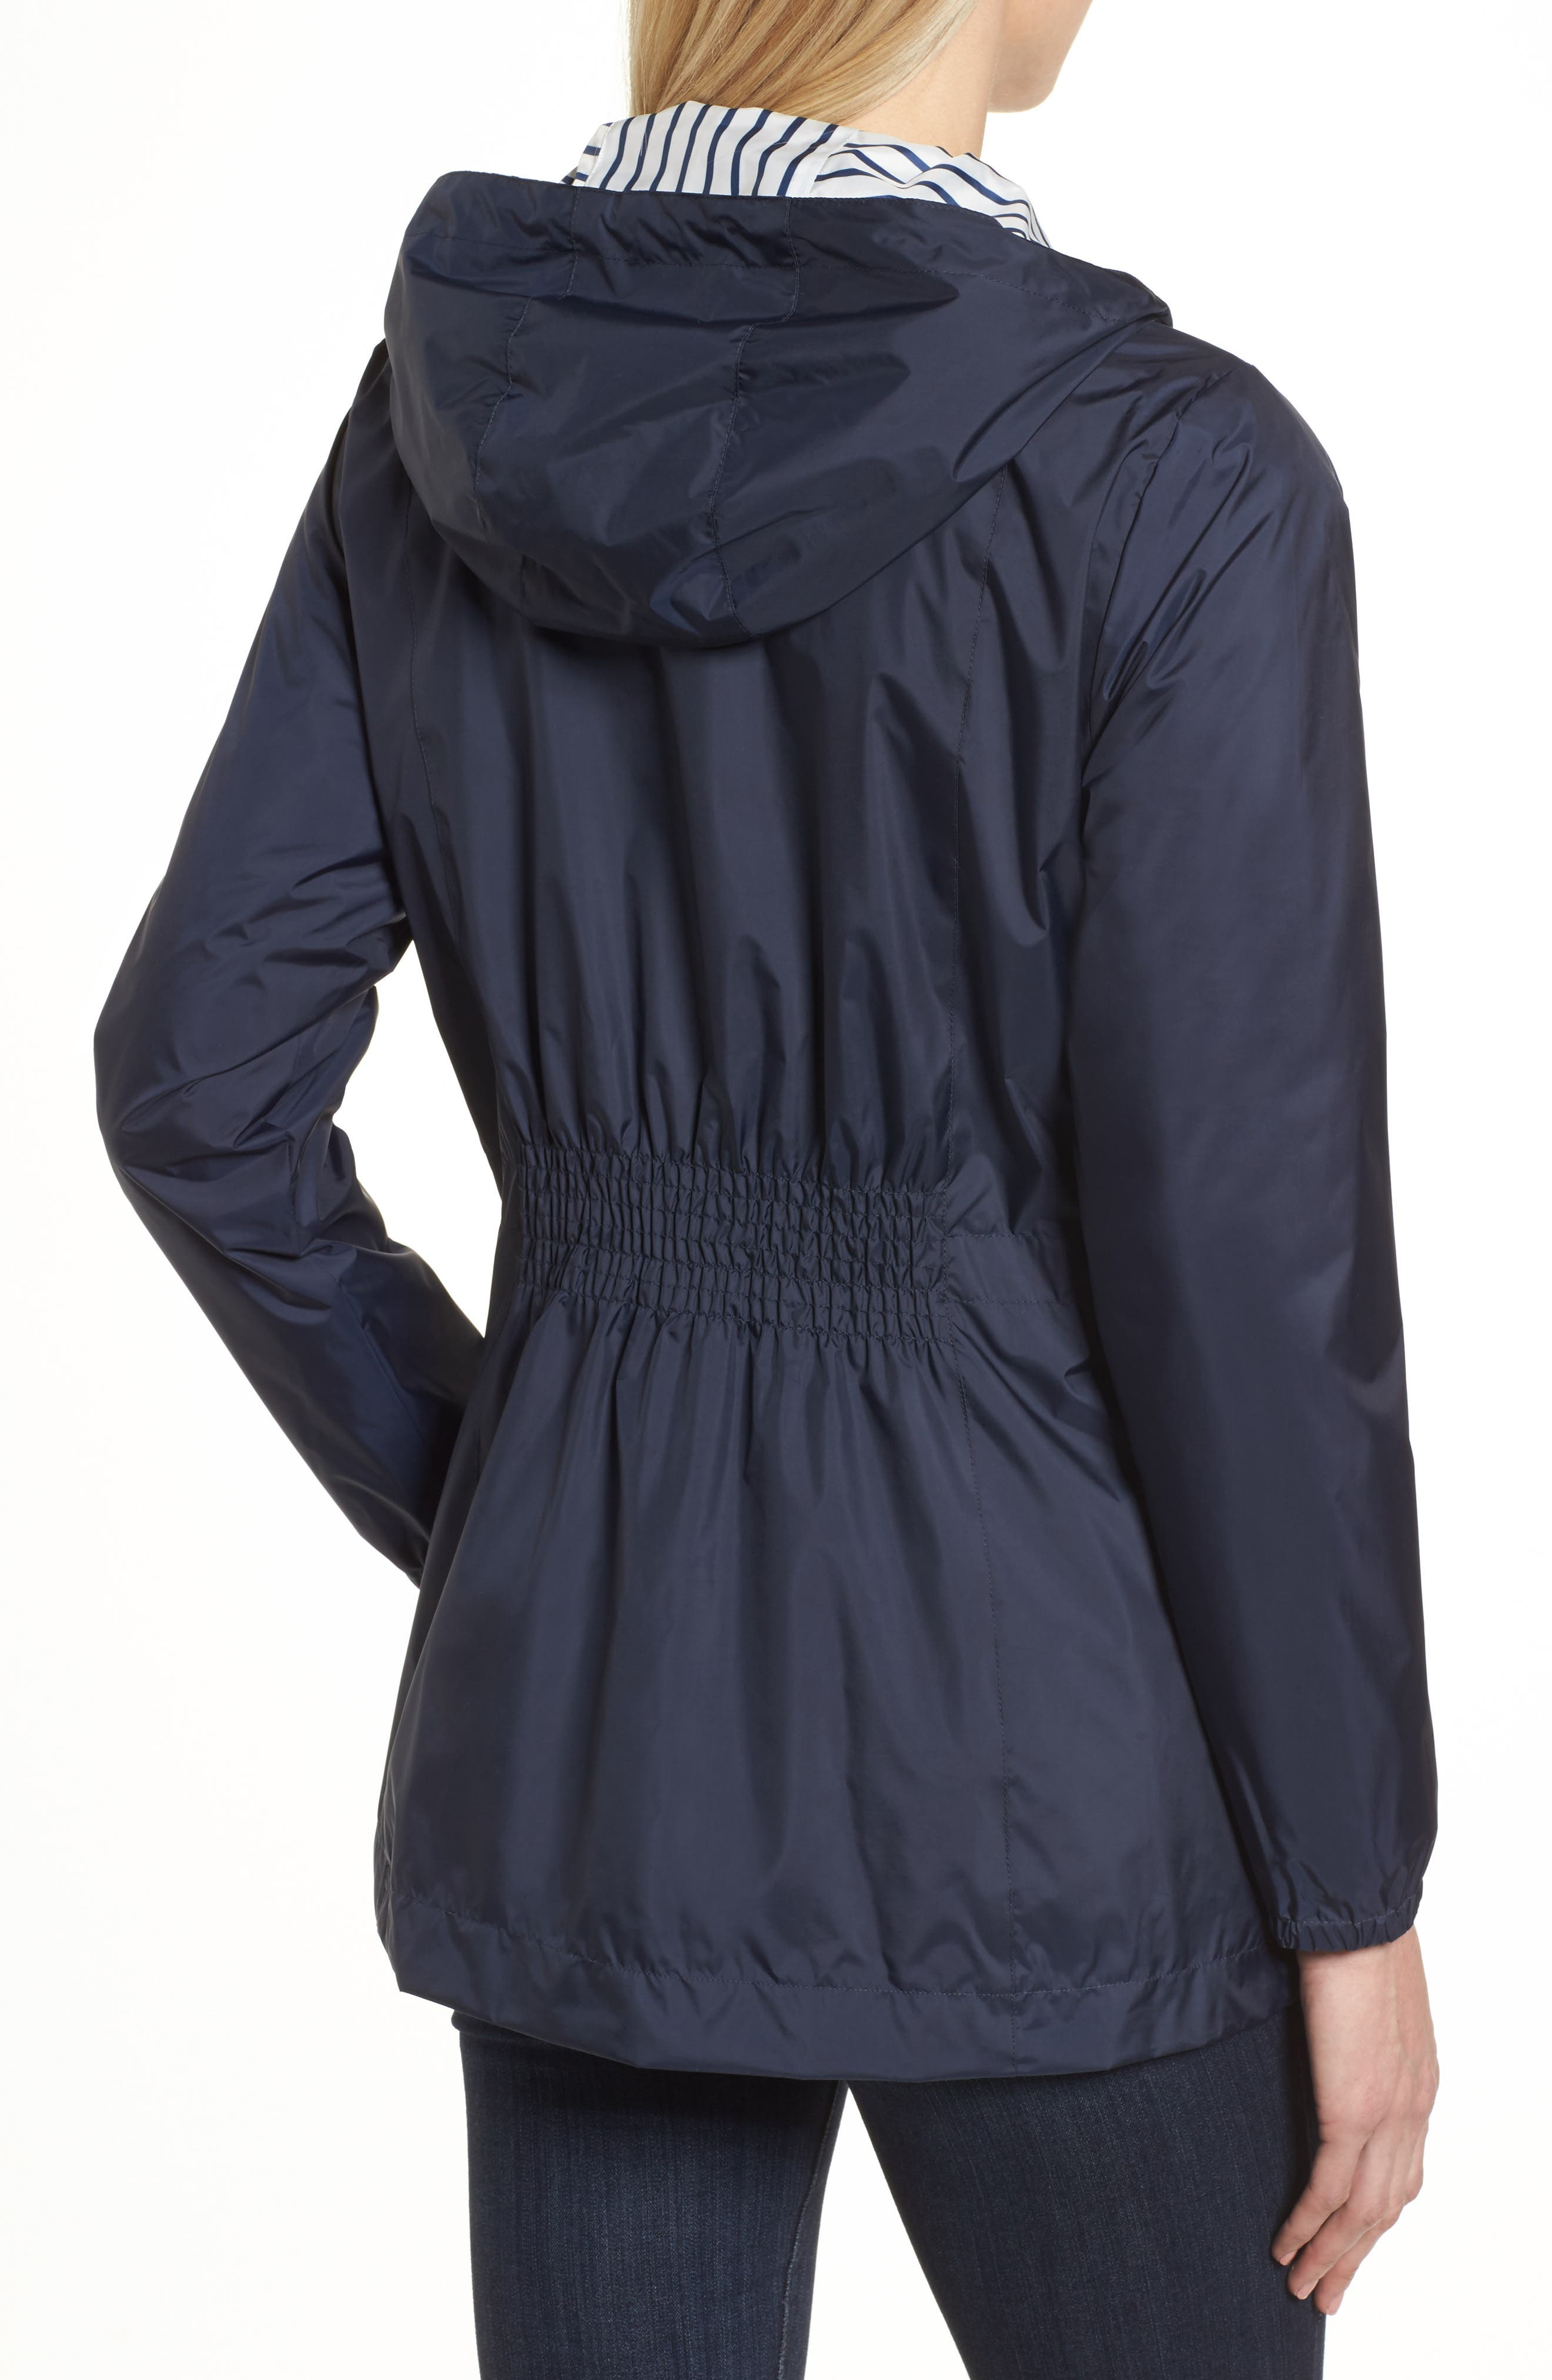 Solid to Stripe Reversible Jacket,                             Alternate thumbnail 3, color,                             Navy